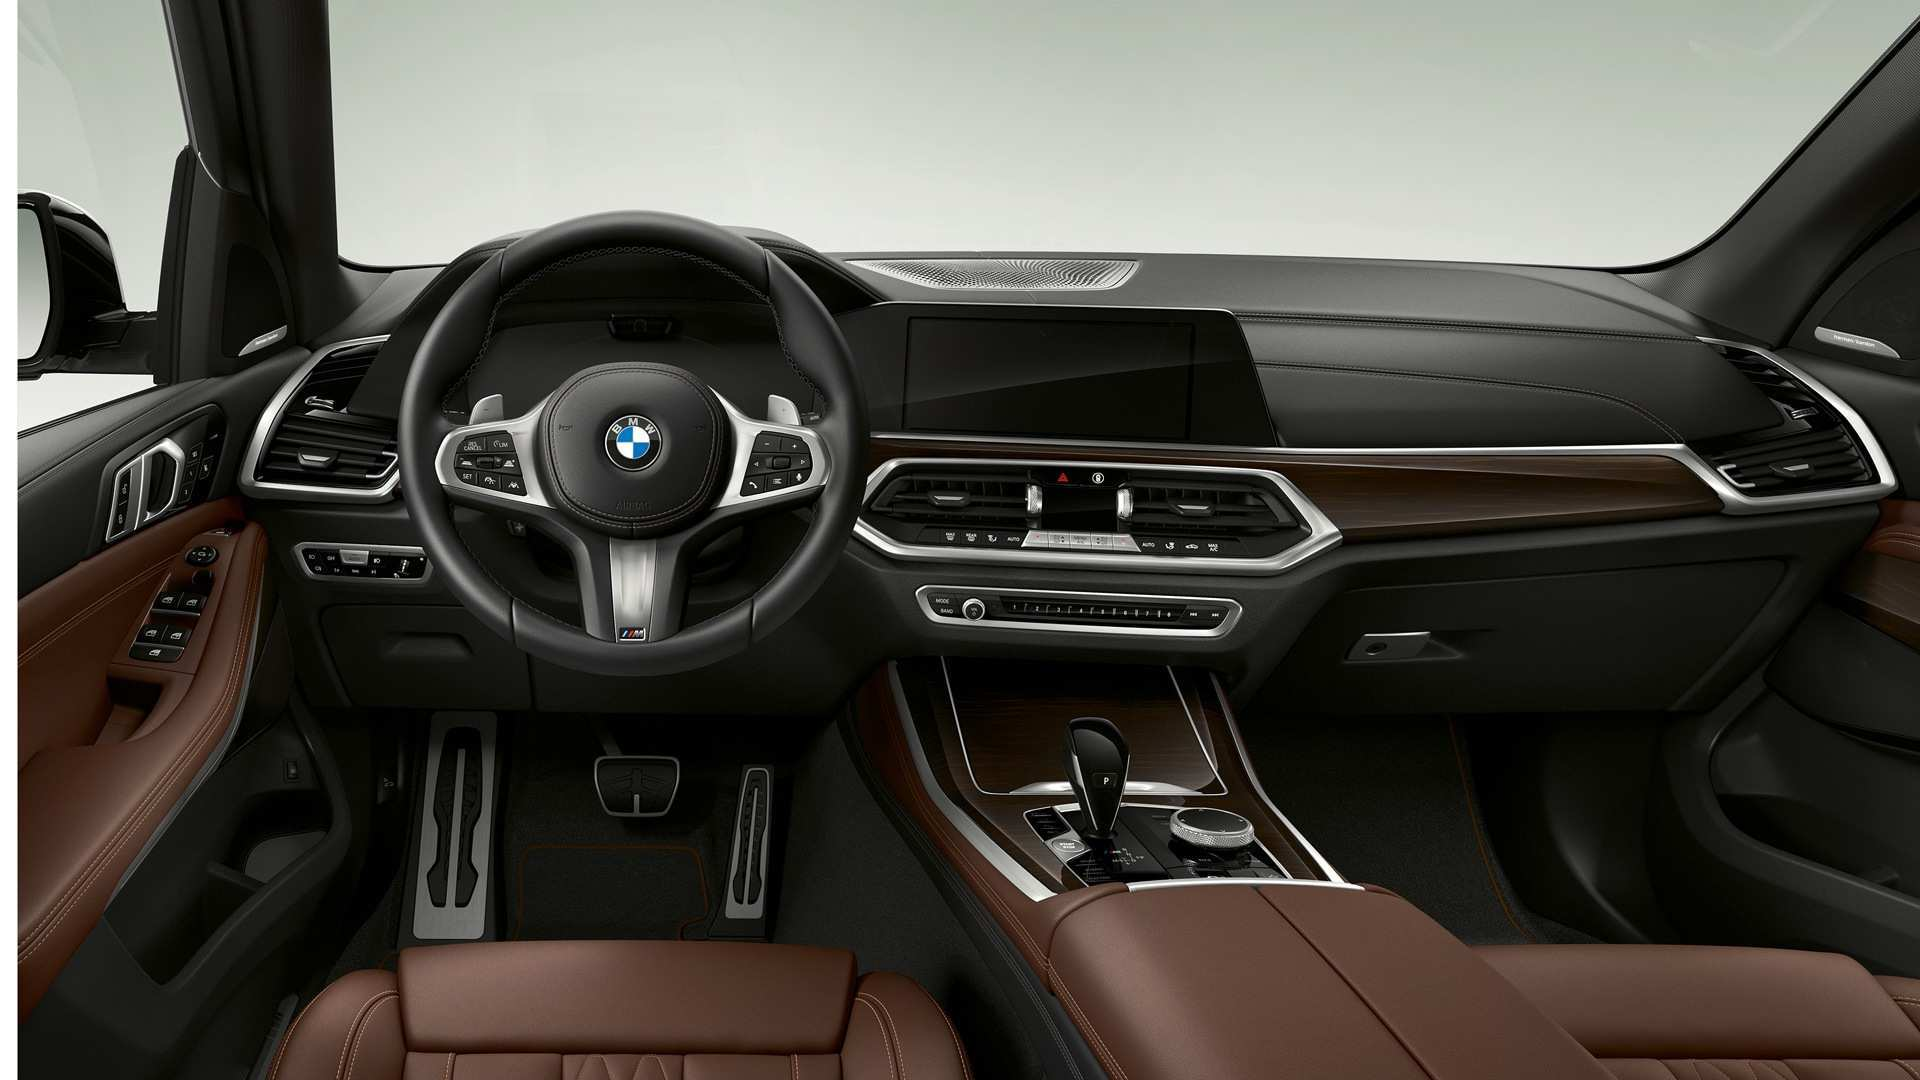 96 New 2020 Bmw X5 Hybrid Price Design And Review